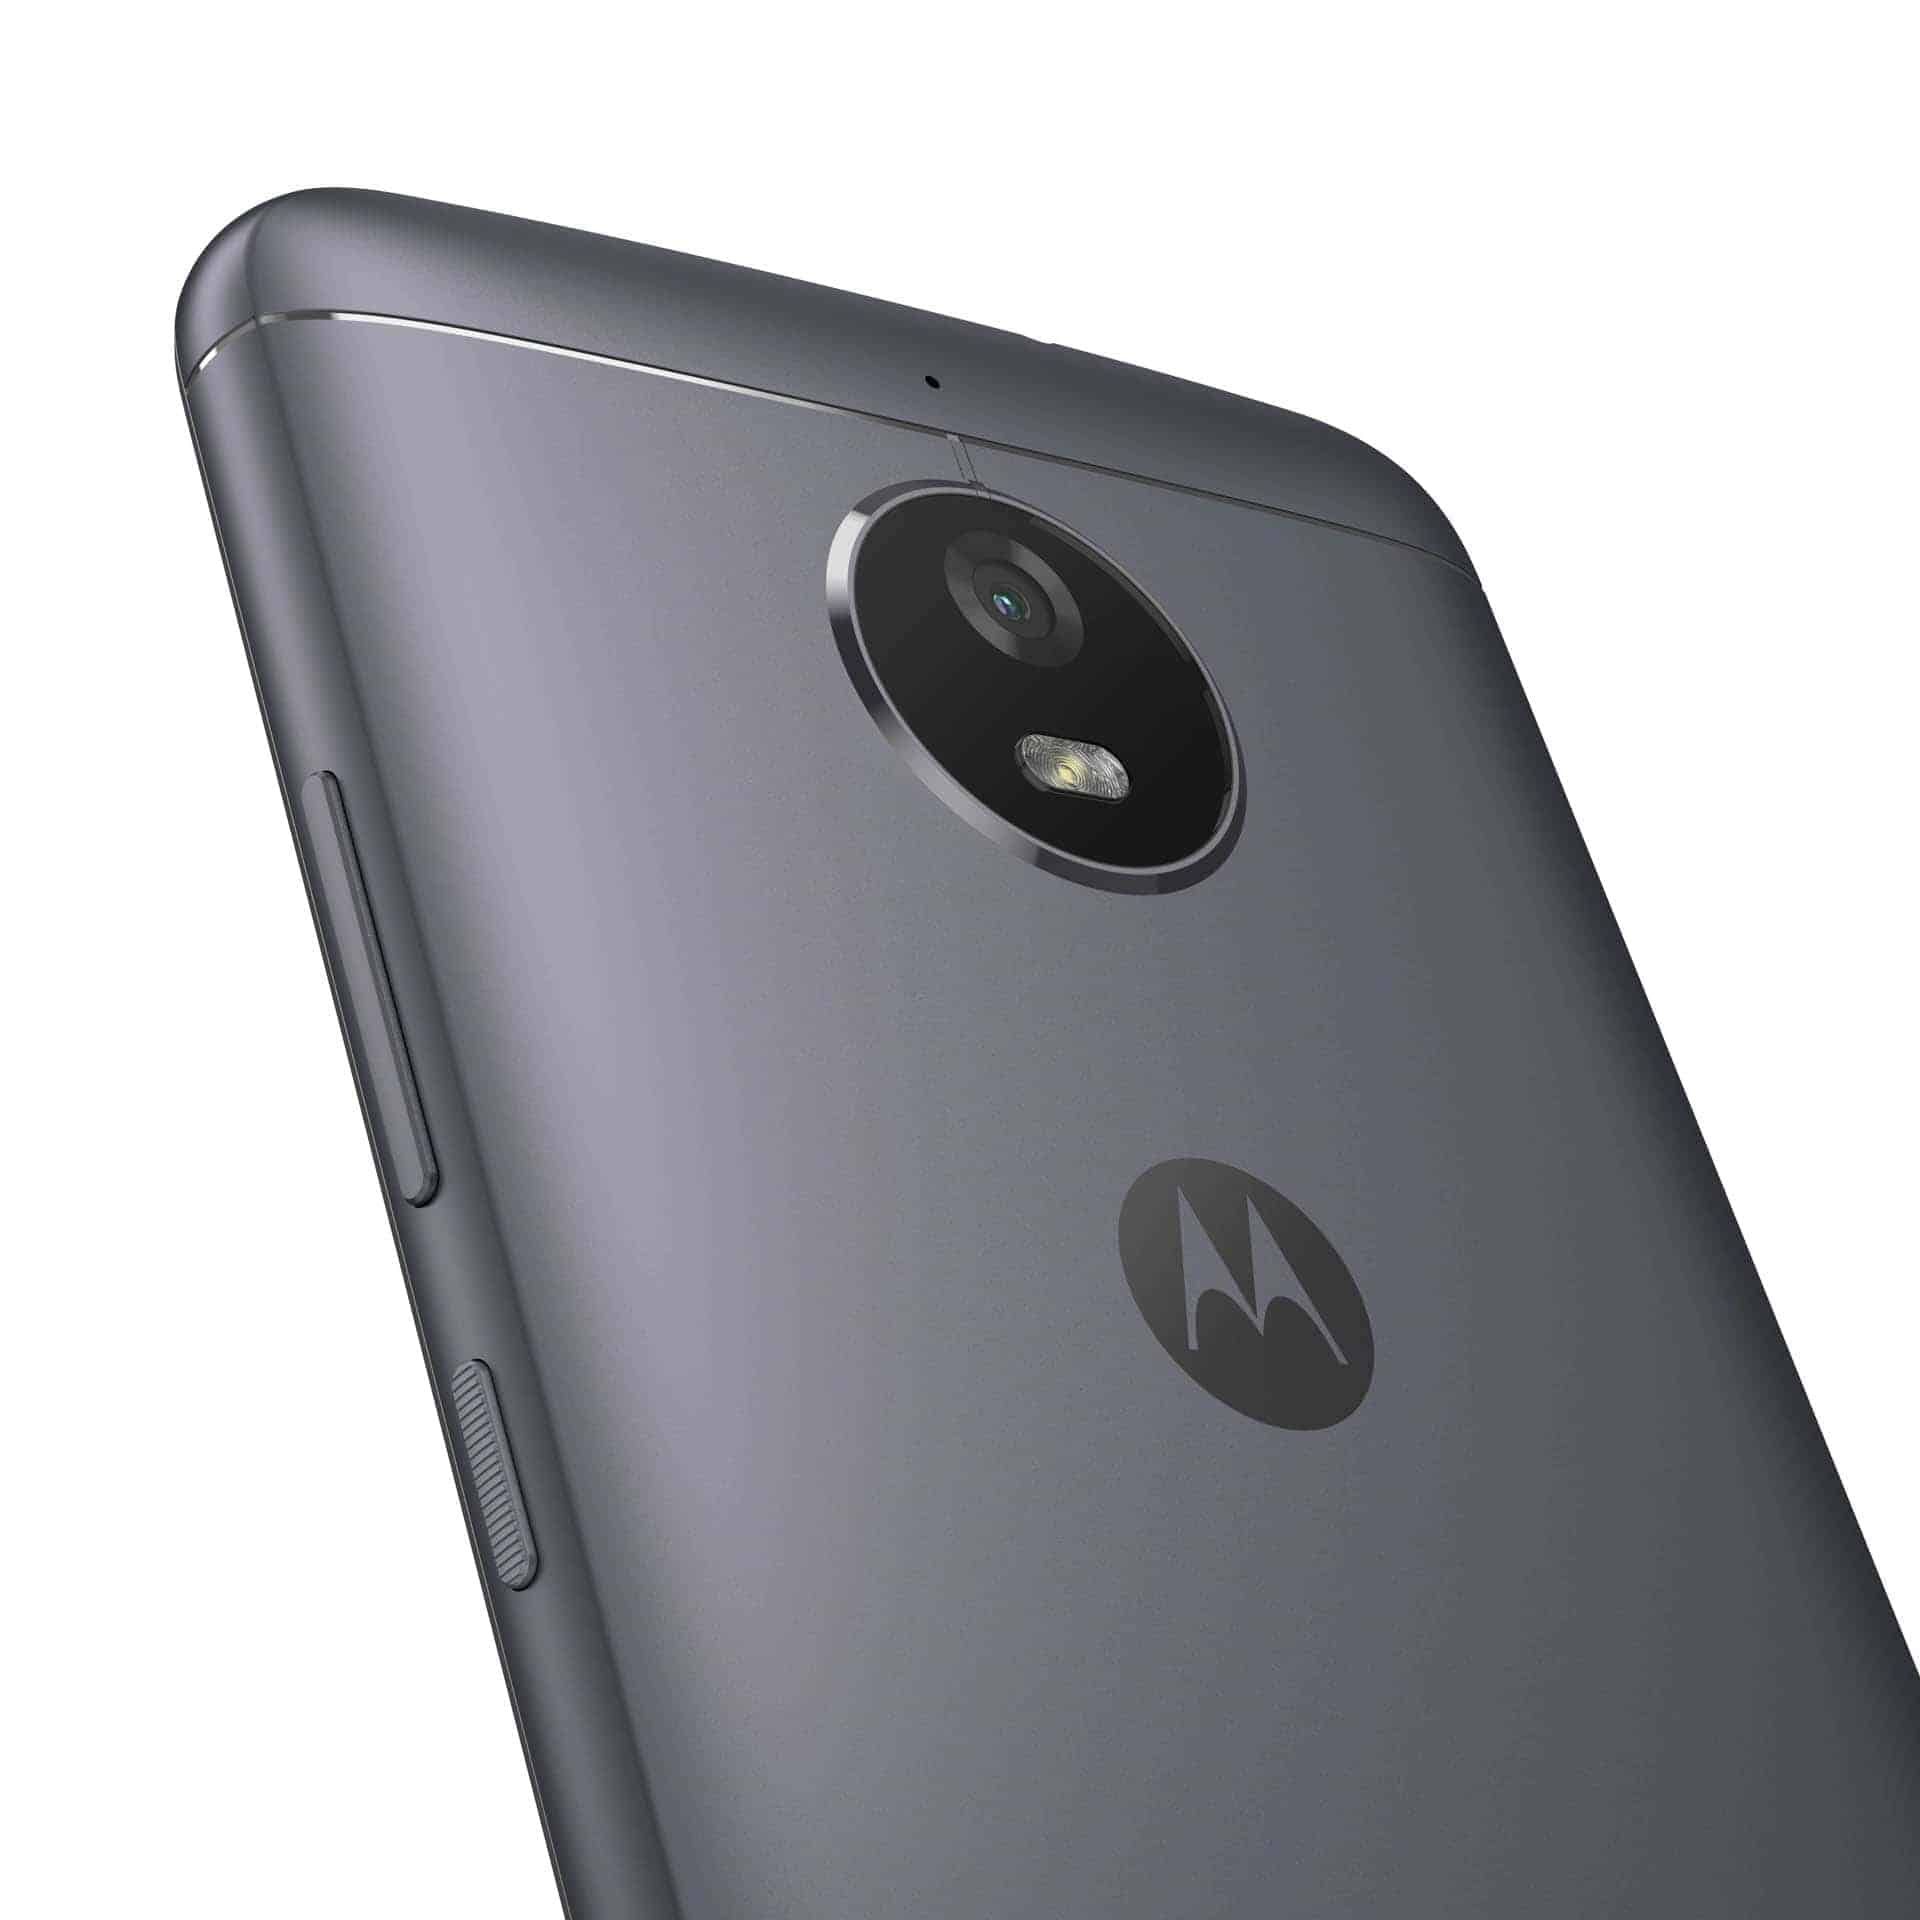 Moto E4 Iron Gray Back Detail With NFC